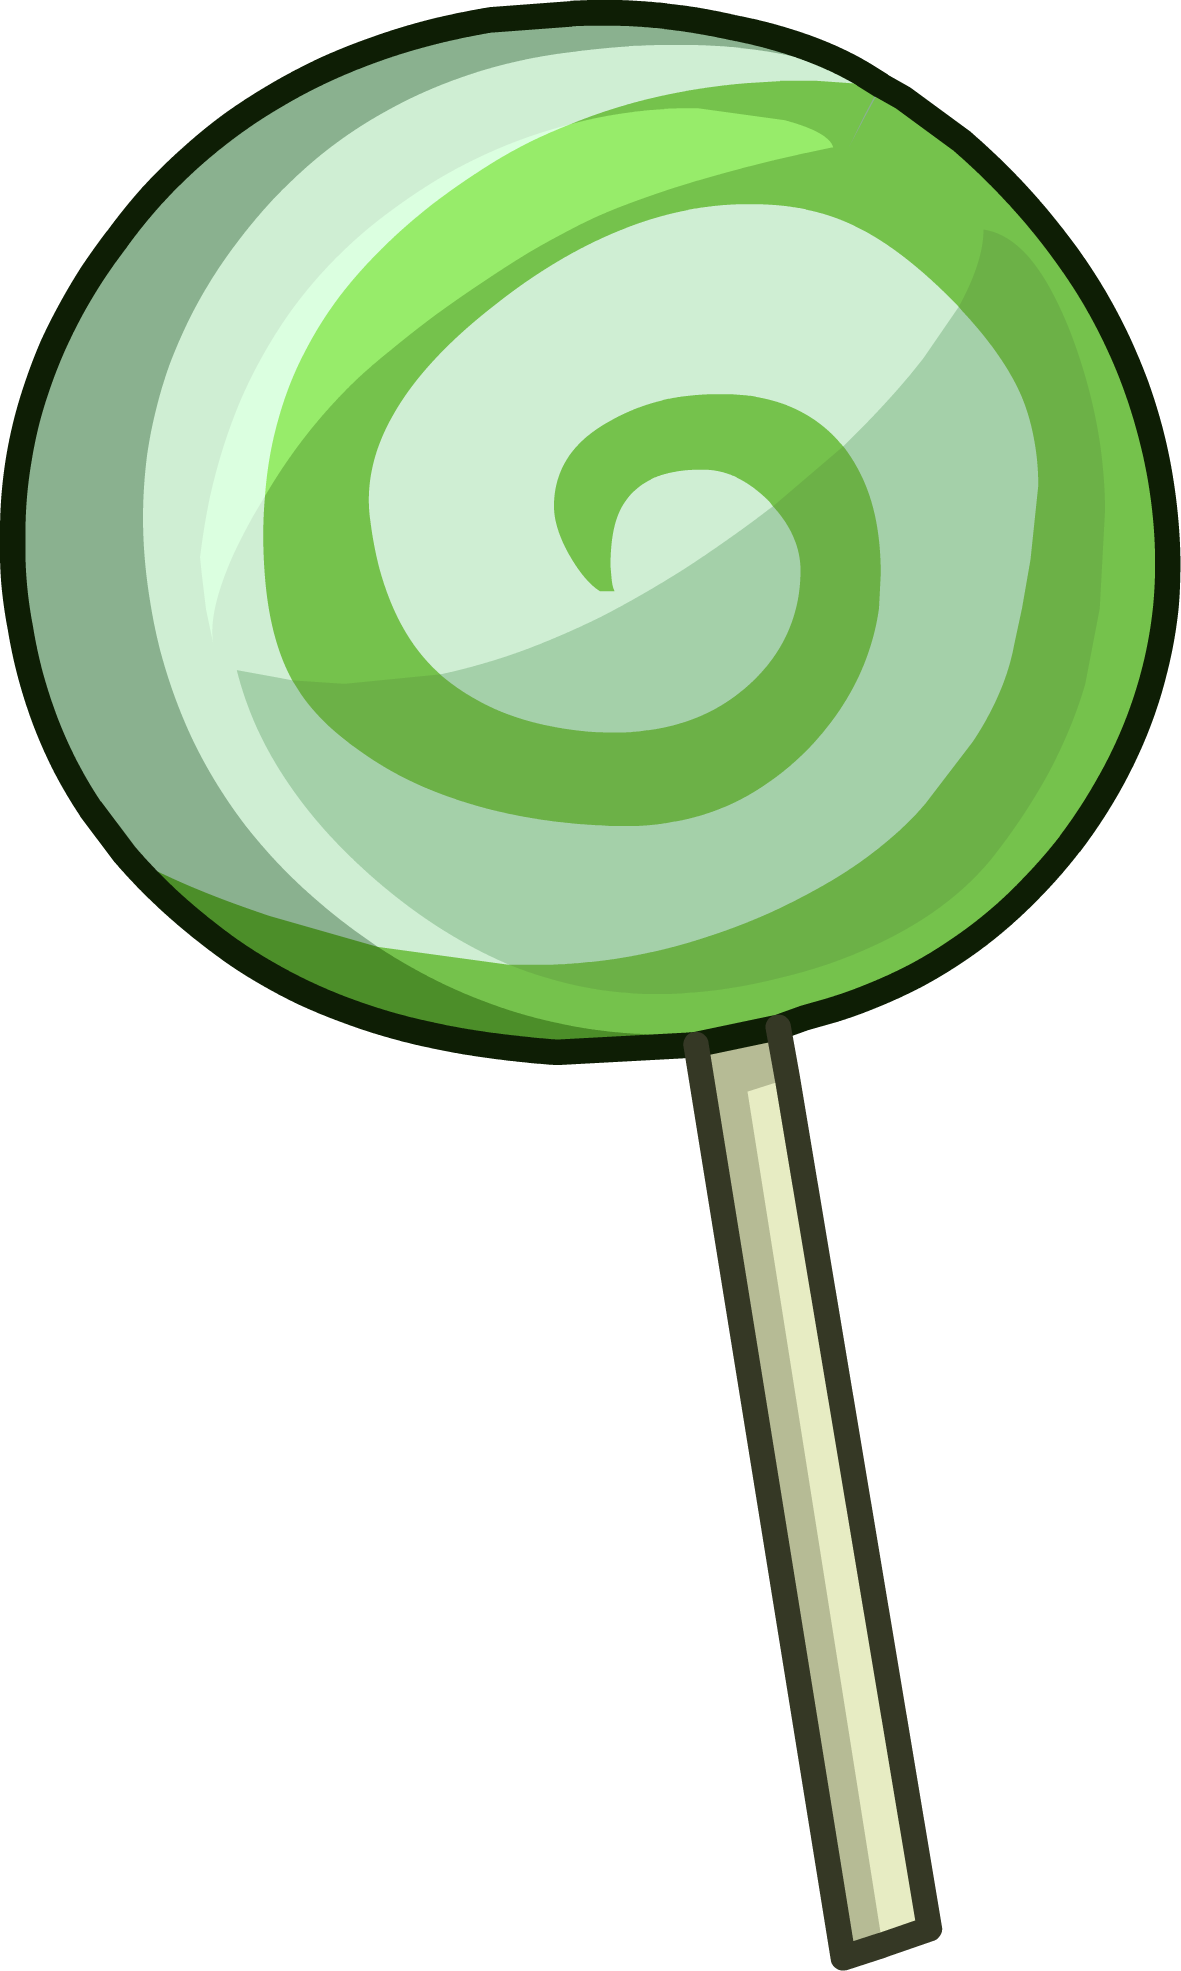 Image swirly png club. Marbles clipart lollipop